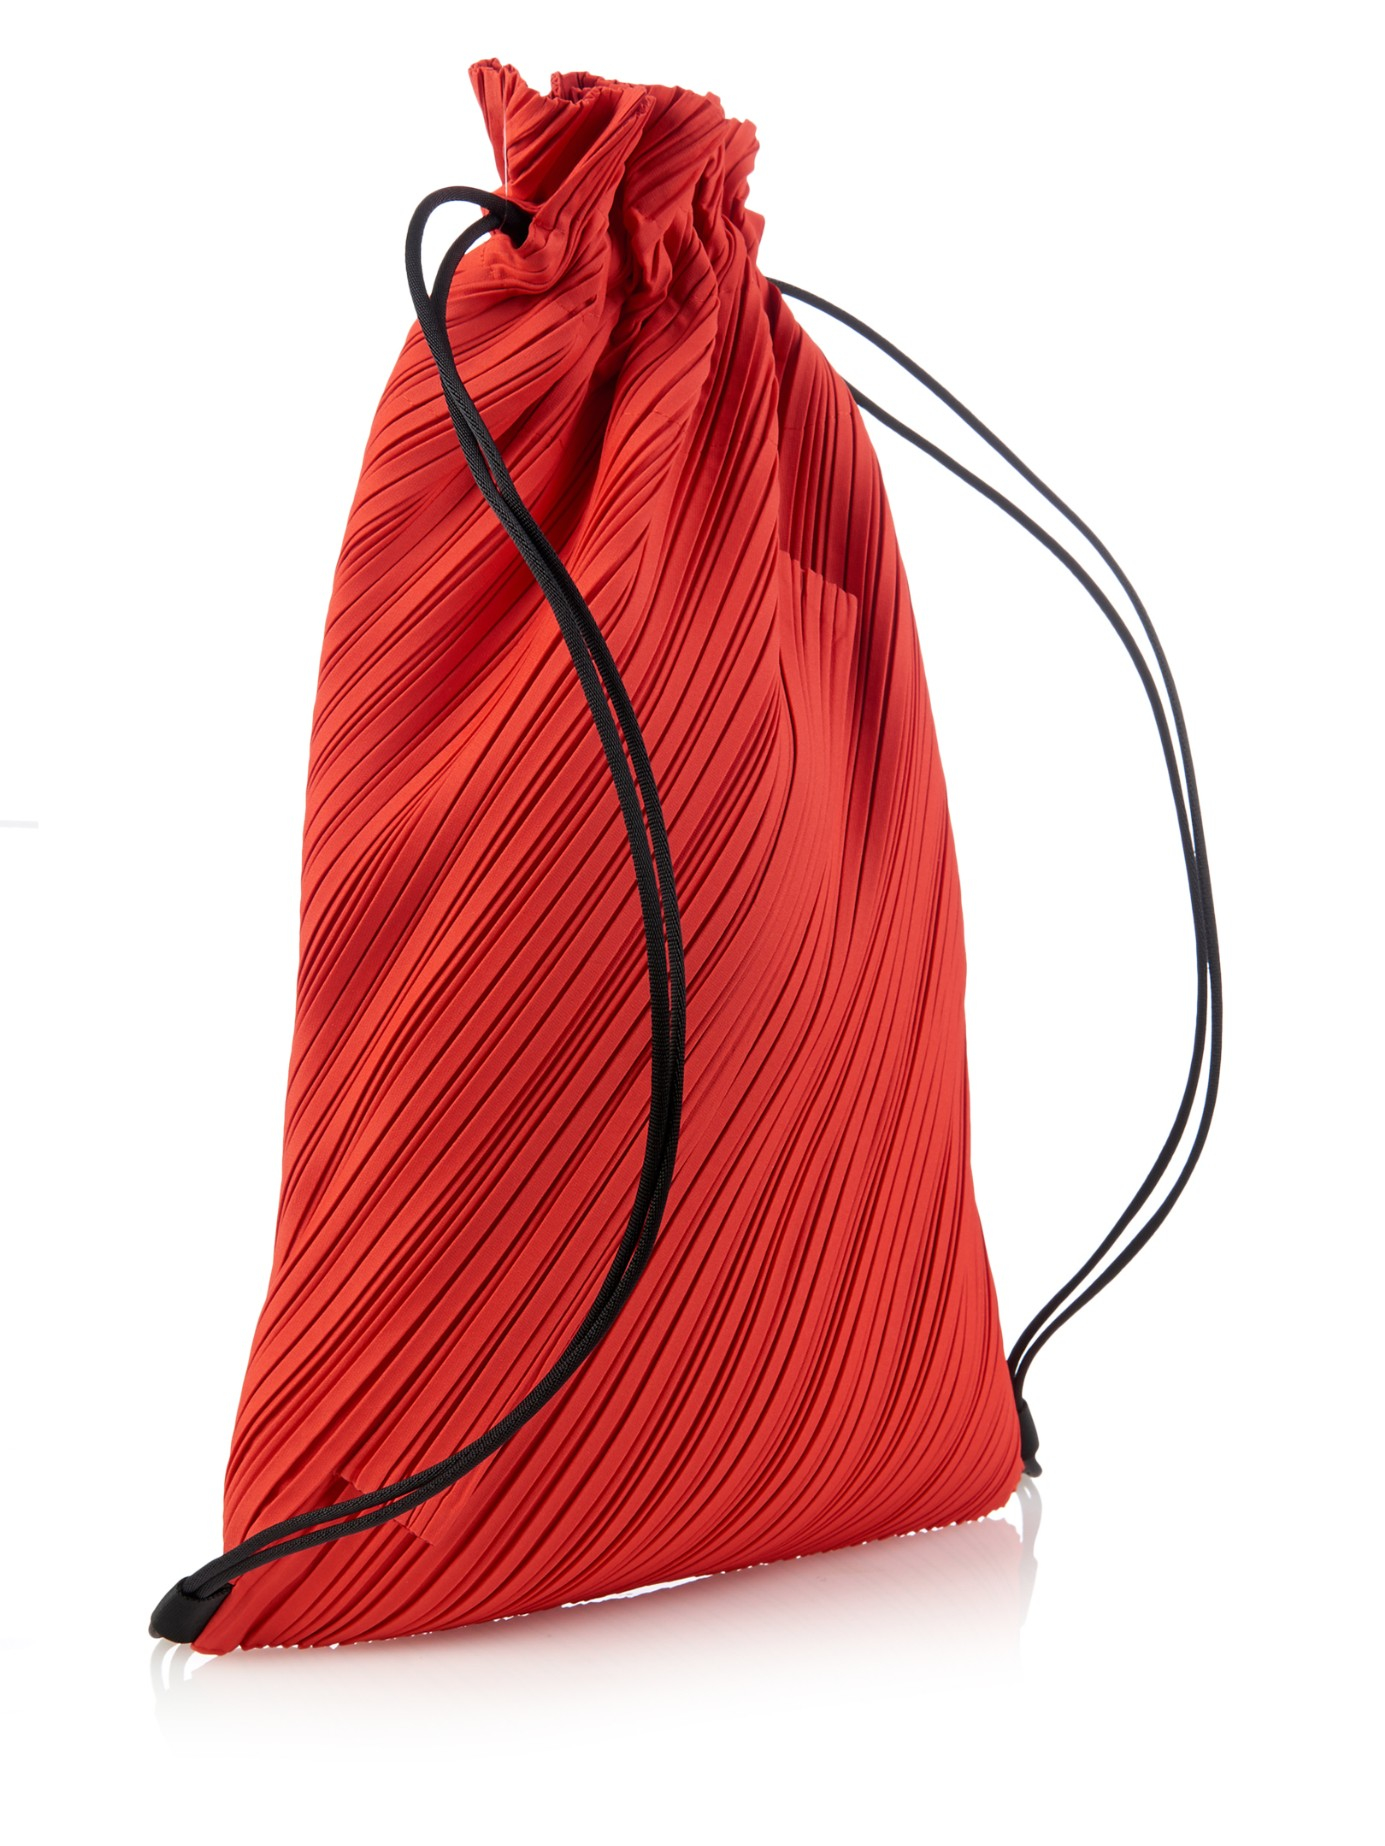 Lyst - Pleats Please Issey Miyake Pleated Drawstring Backpack in Red a7e0015bb2f8f